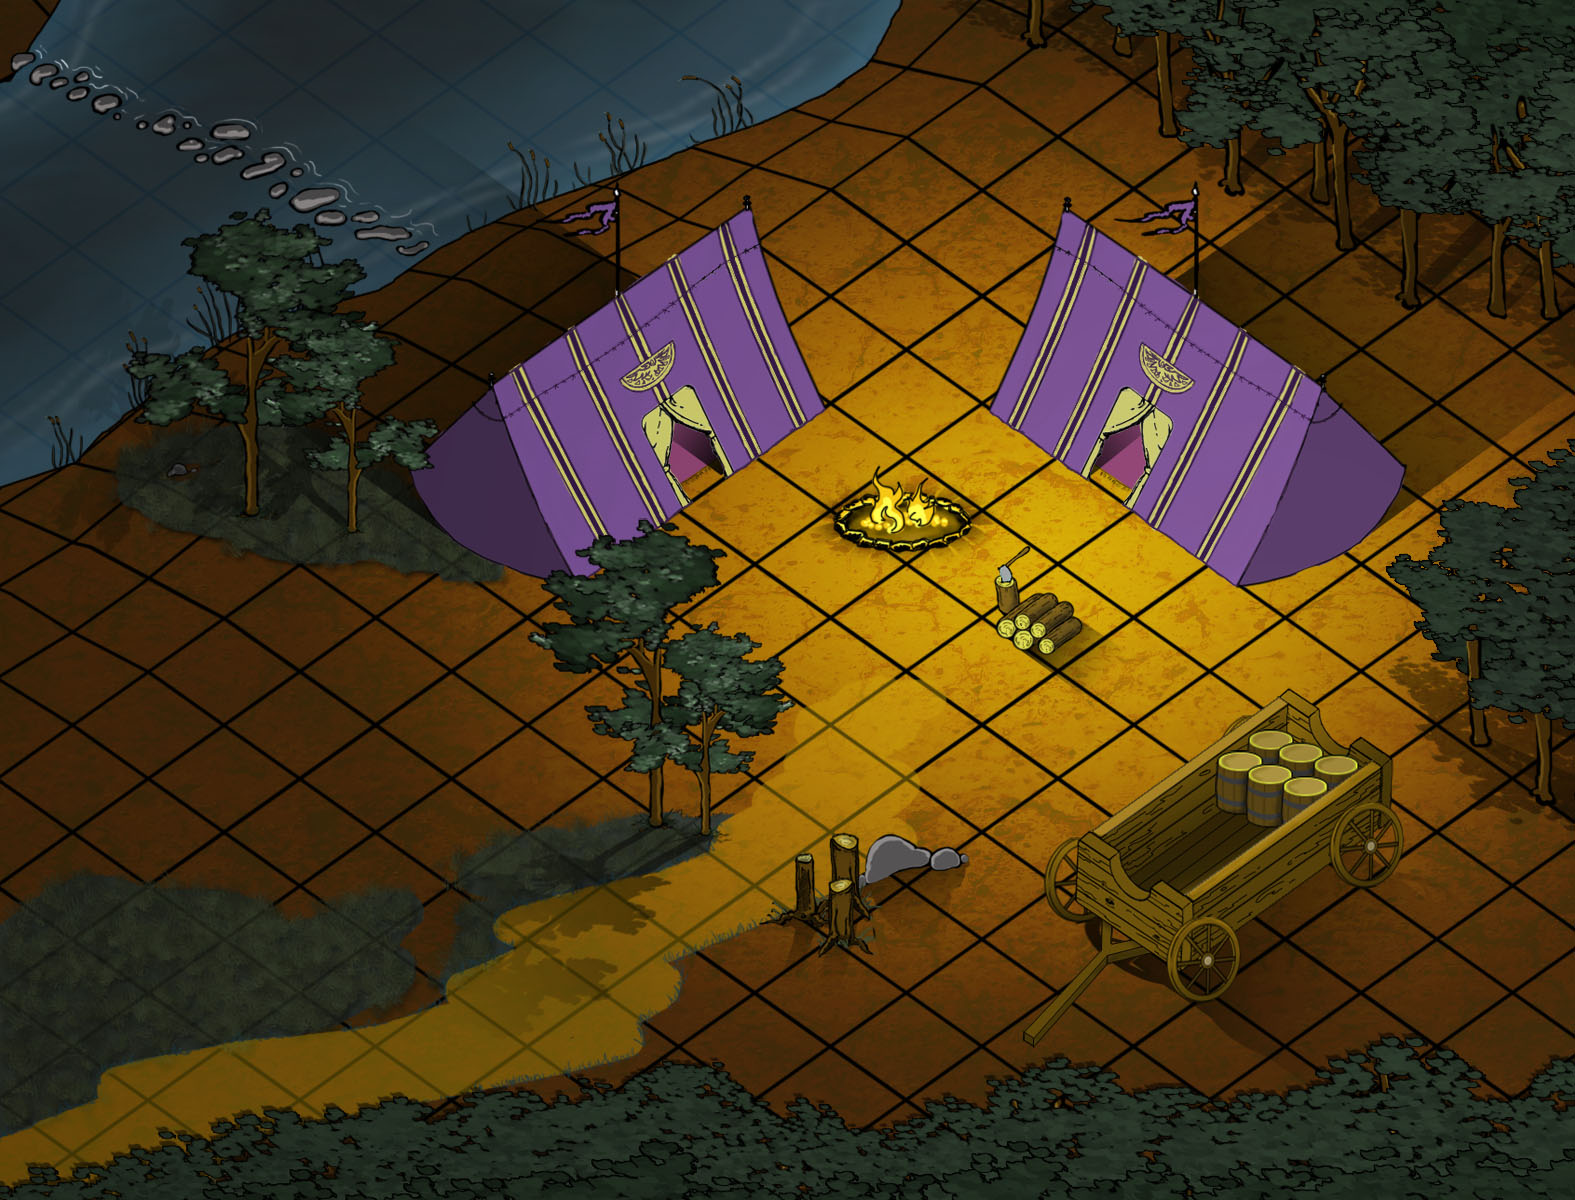 January Lit Mapping Challenge - Isometric Campsite